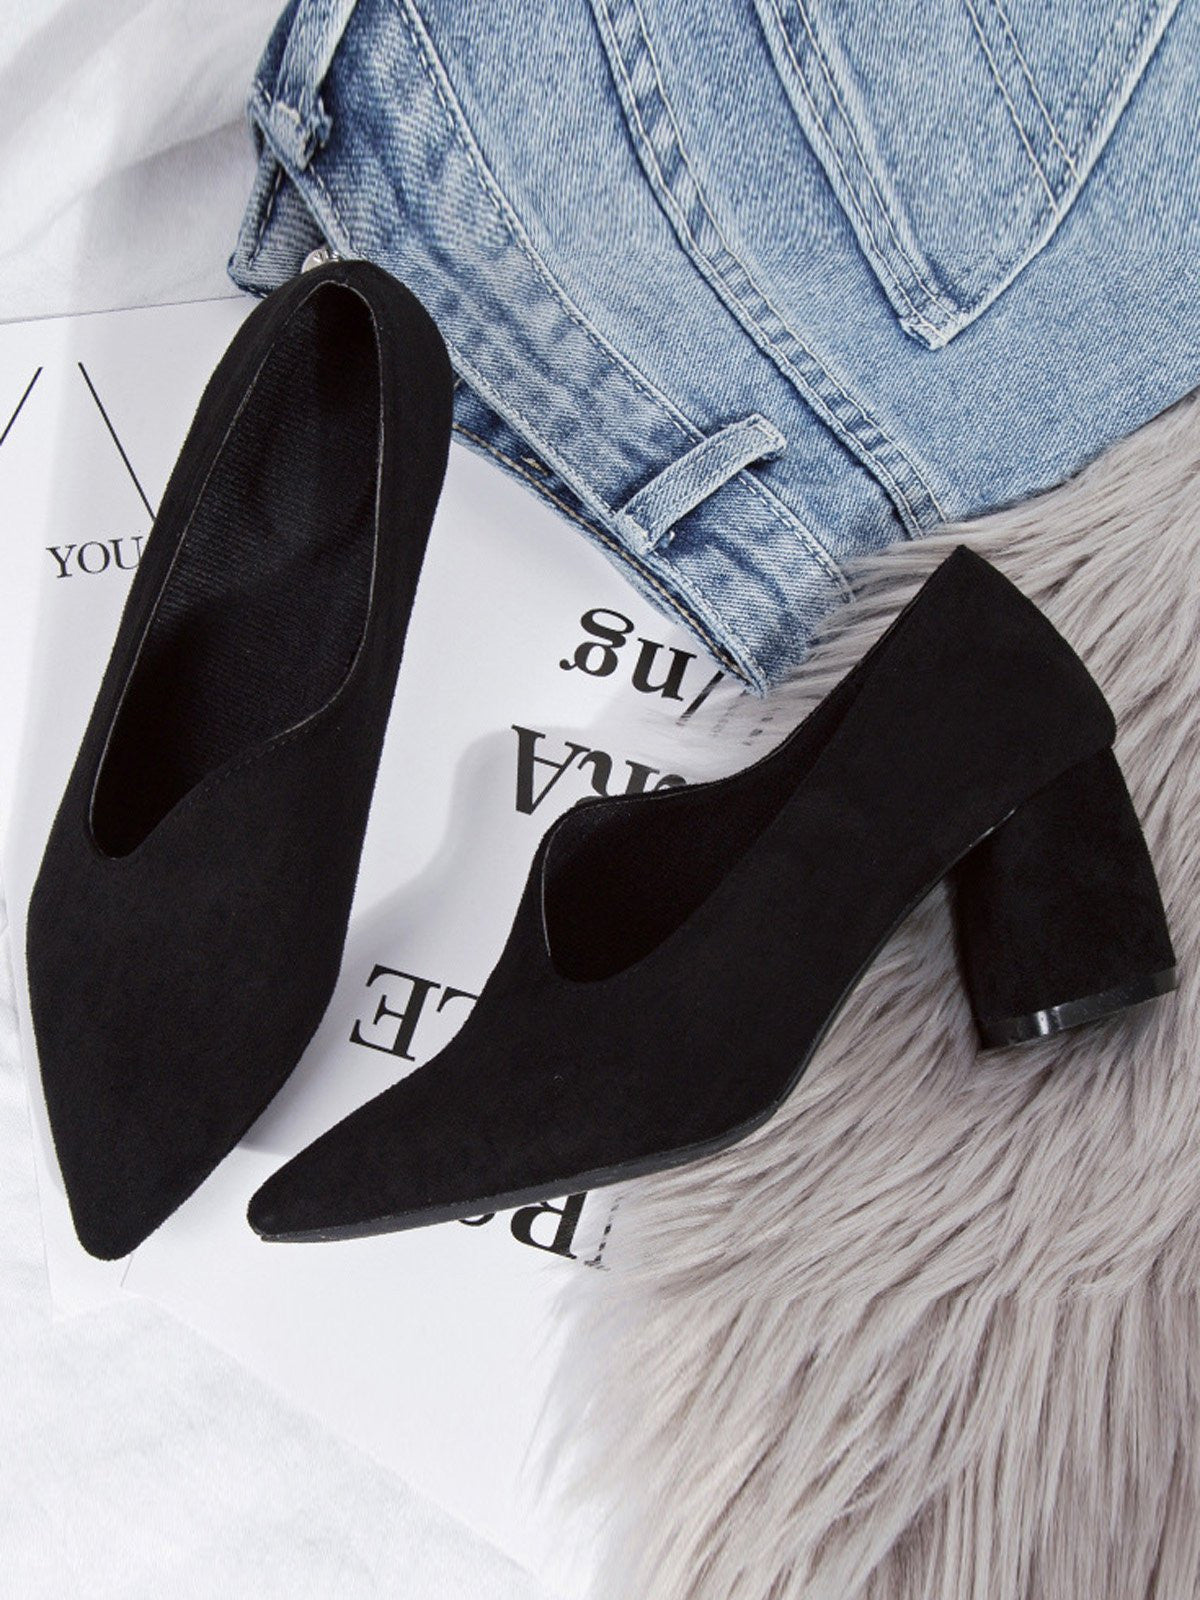 bd10beb73b9aa Vintage Pointed Toe Slip-on Shoes - Retro Stage - Chic Vintage ...